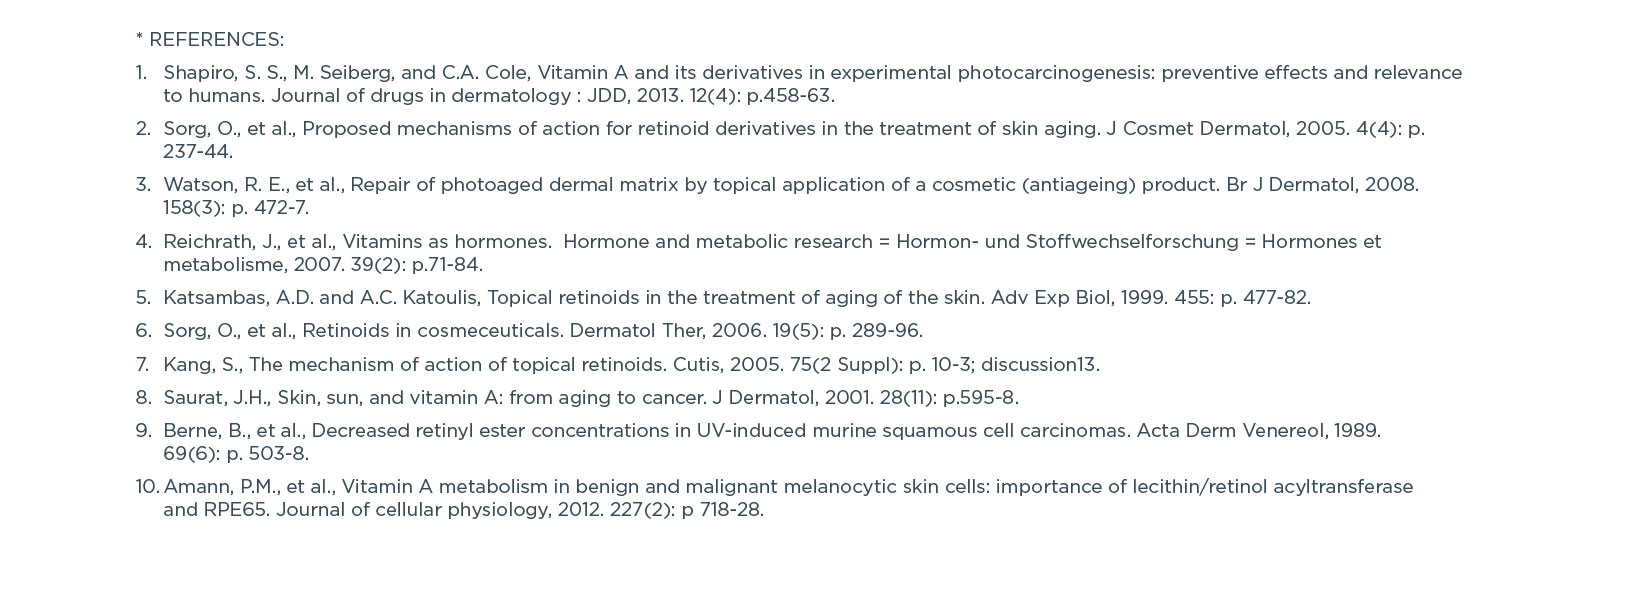 Vitamin A References